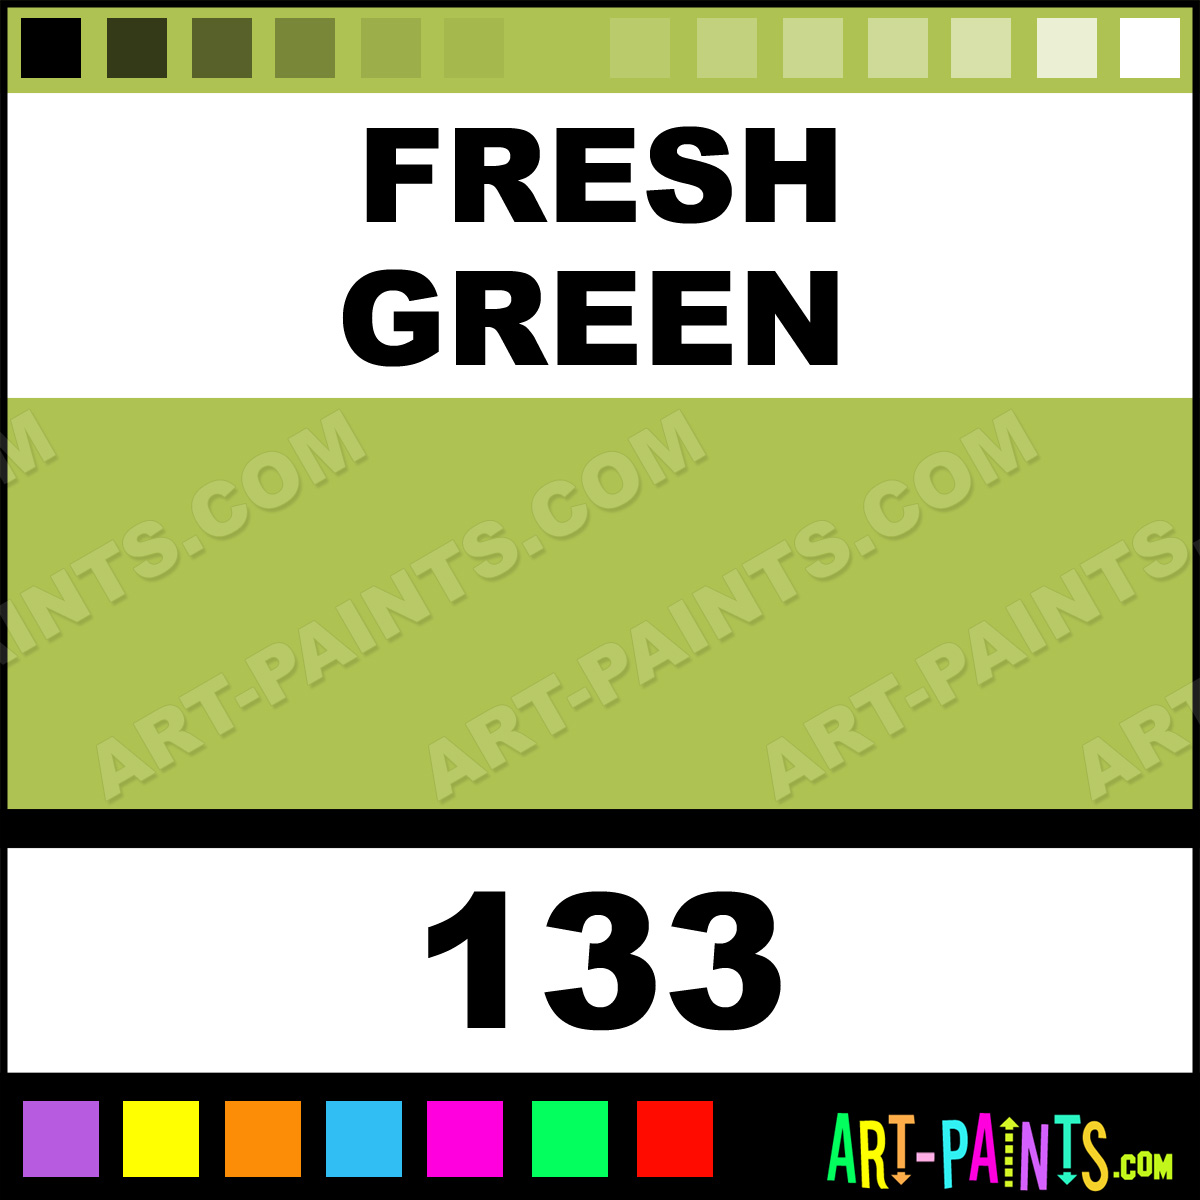 Fresh Green Floral Spray Paints 133 Fresh Green Paint Fresh Green Color Design Master